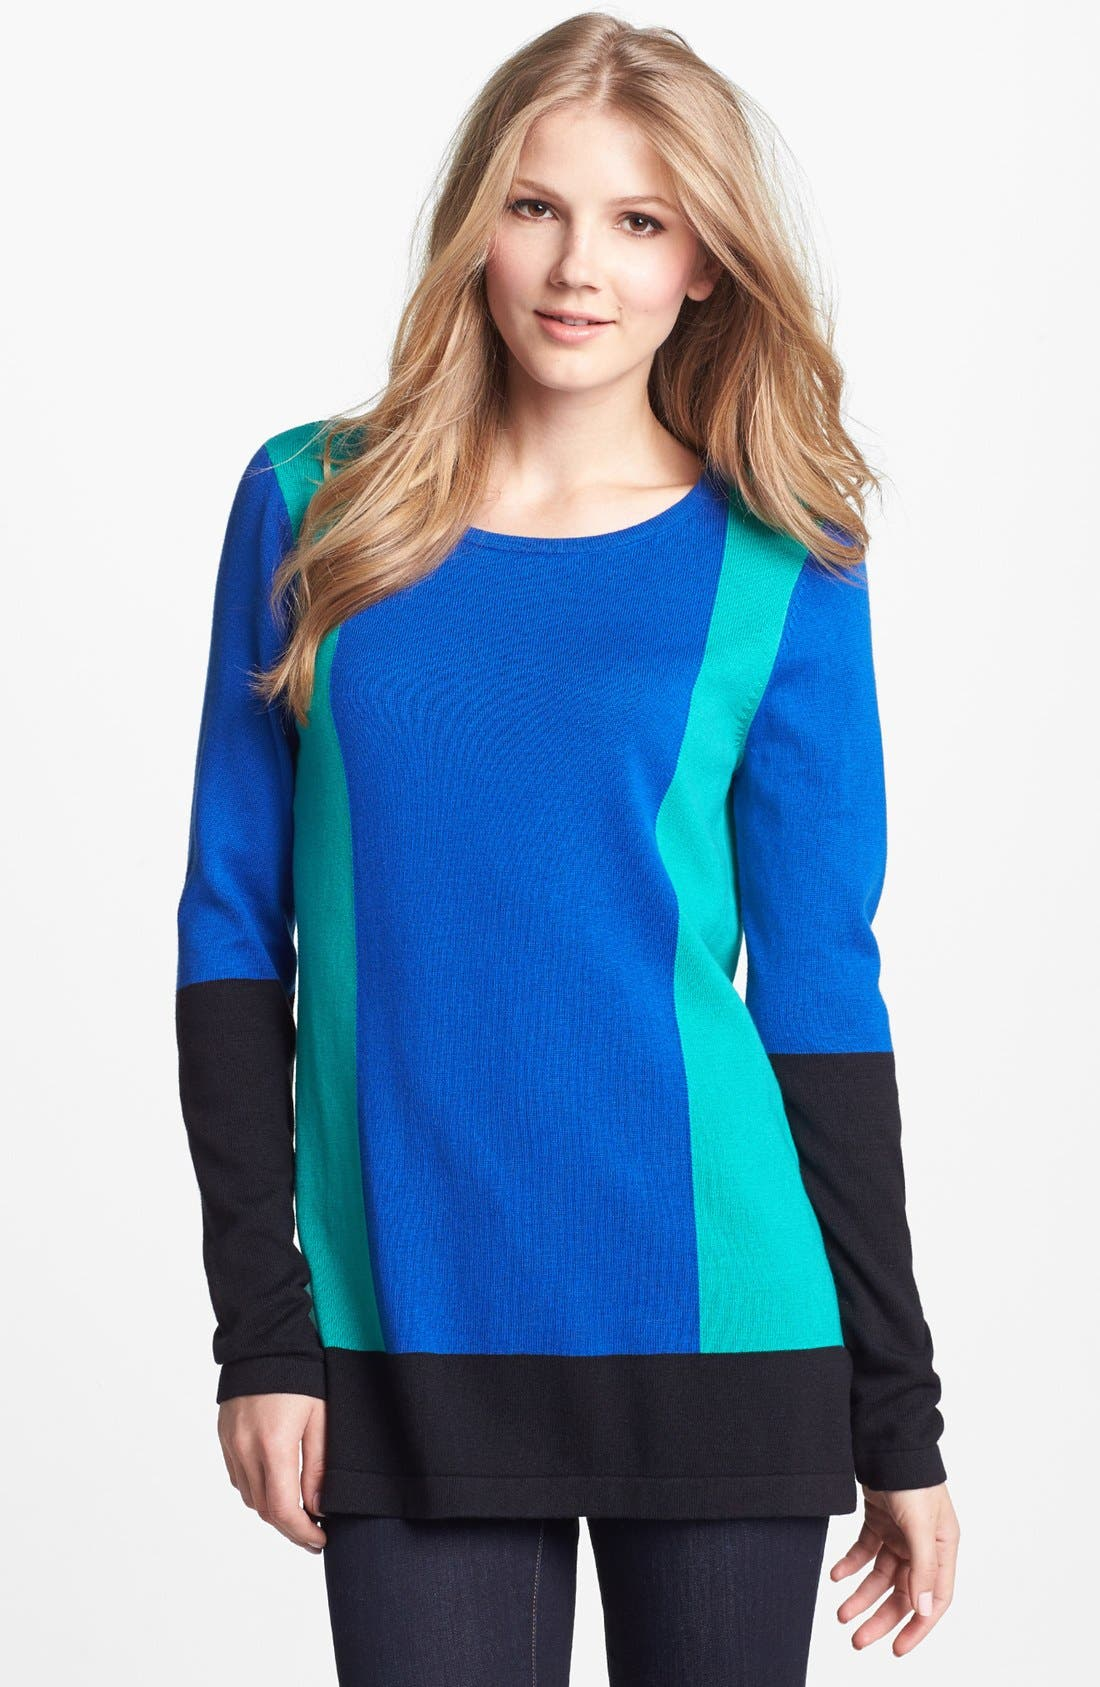 Alternate Image 1 Selected - Vince Camuto Colorblock Cotton Blend Sweater